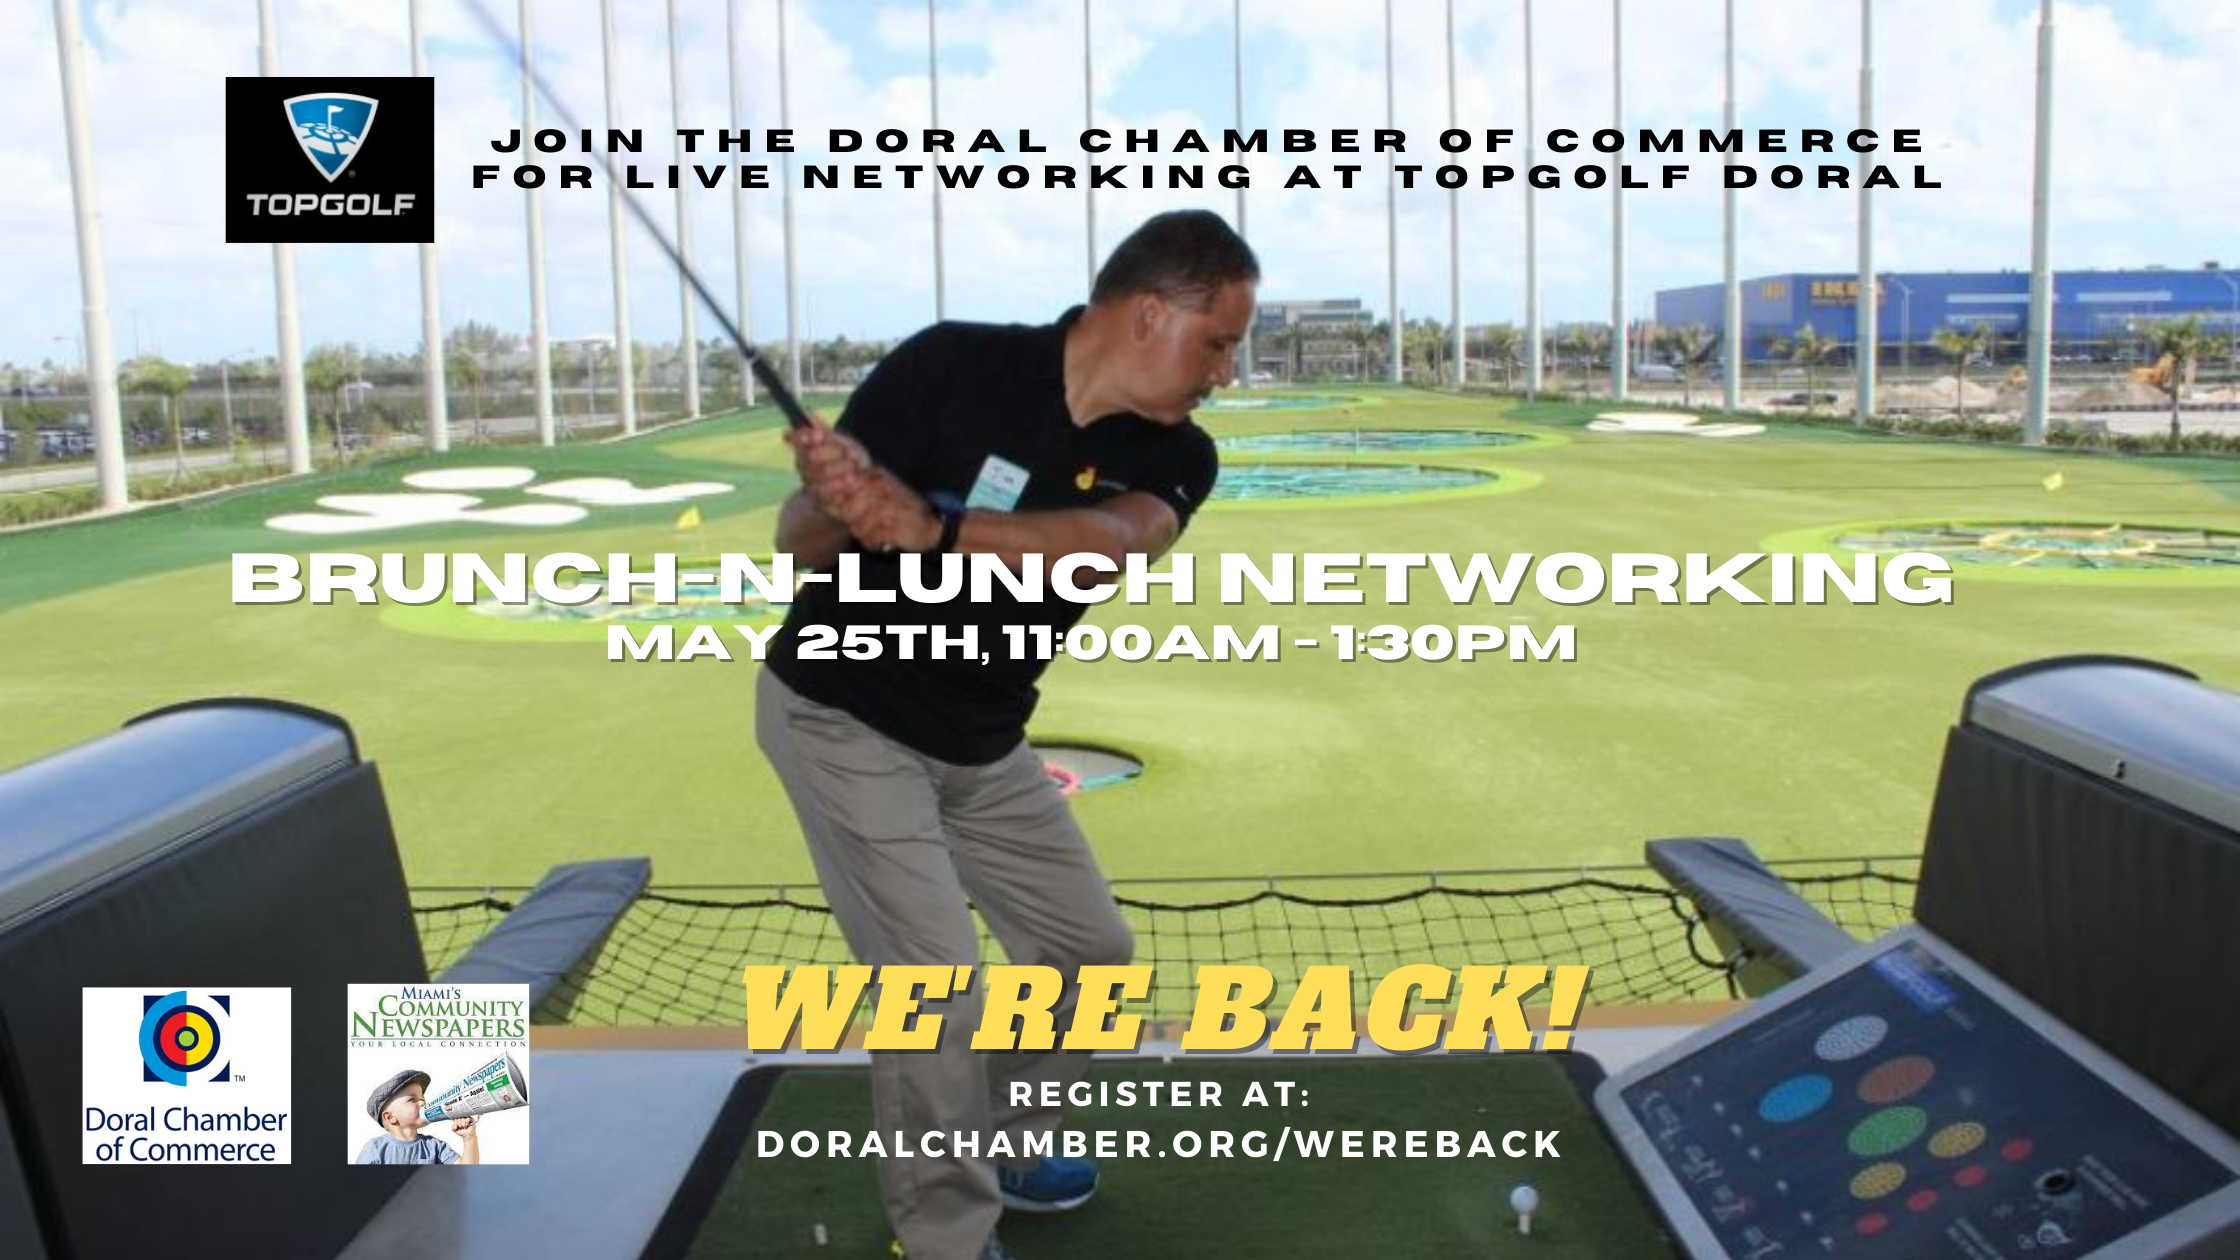 Topgolf Professional Brunch-n-Lunch Networking Event at Topgolf Doral